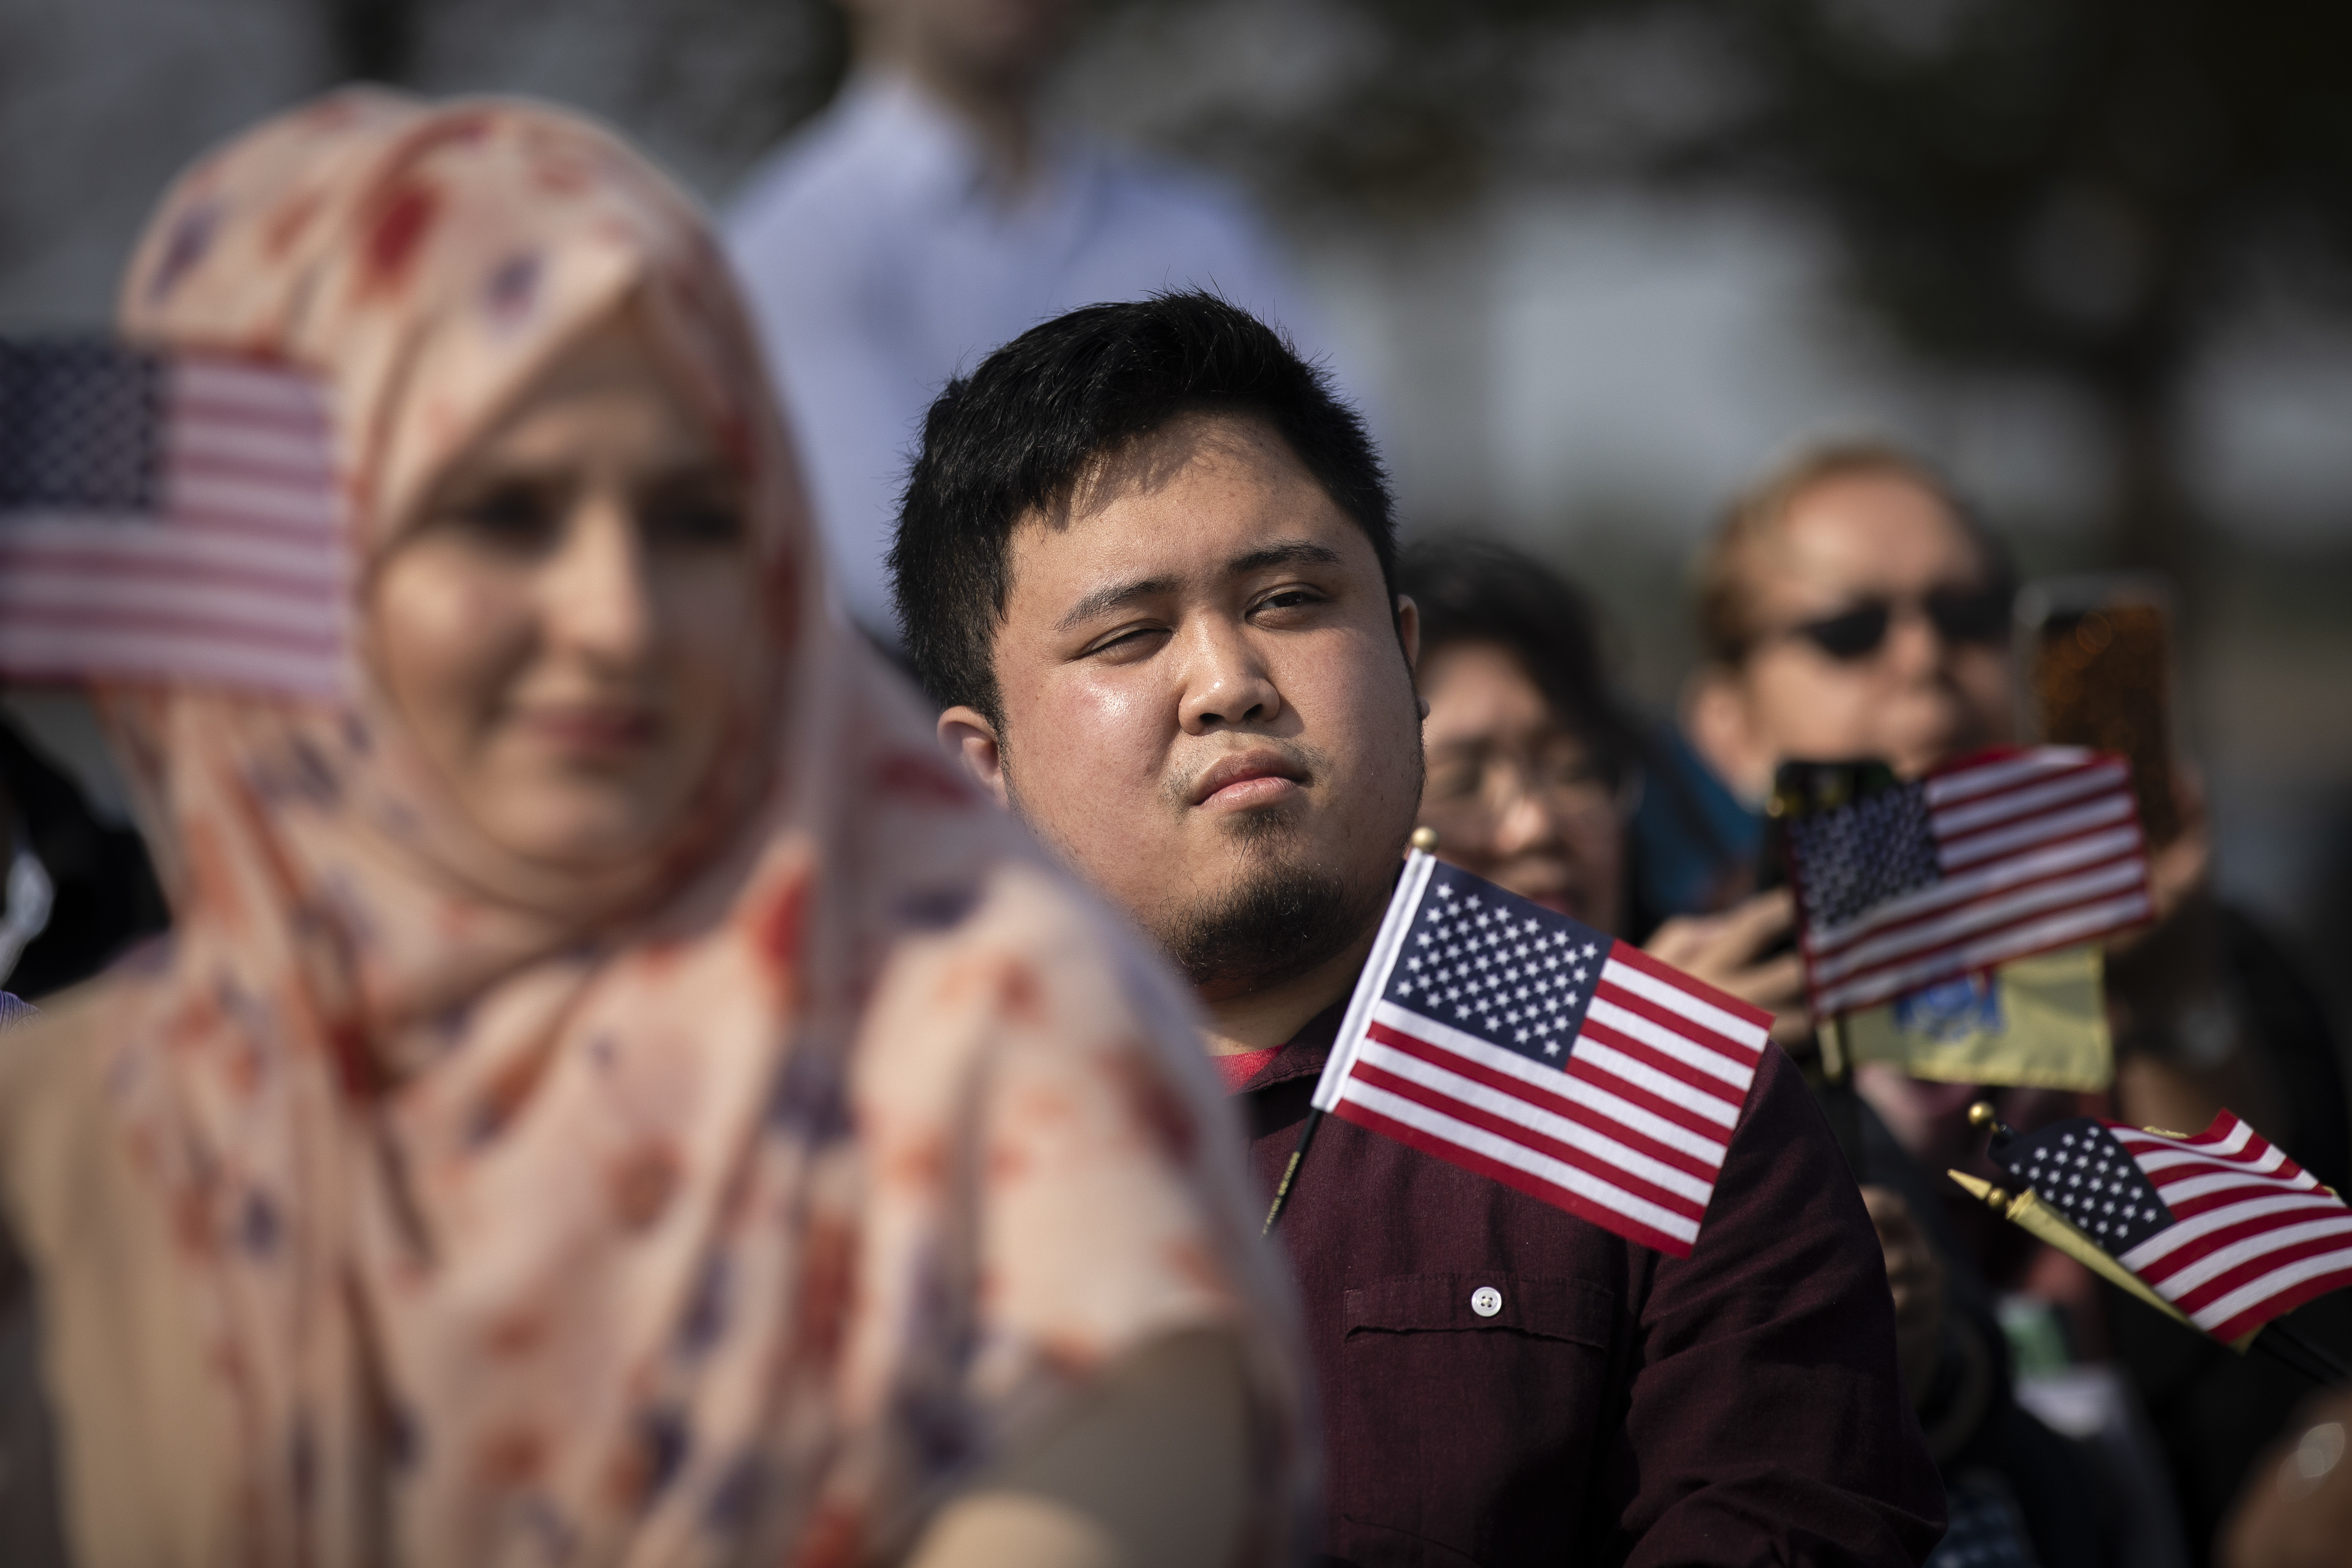 Liberty State Park Hosts Naturalization Ceremony For Immigrants To U.S.